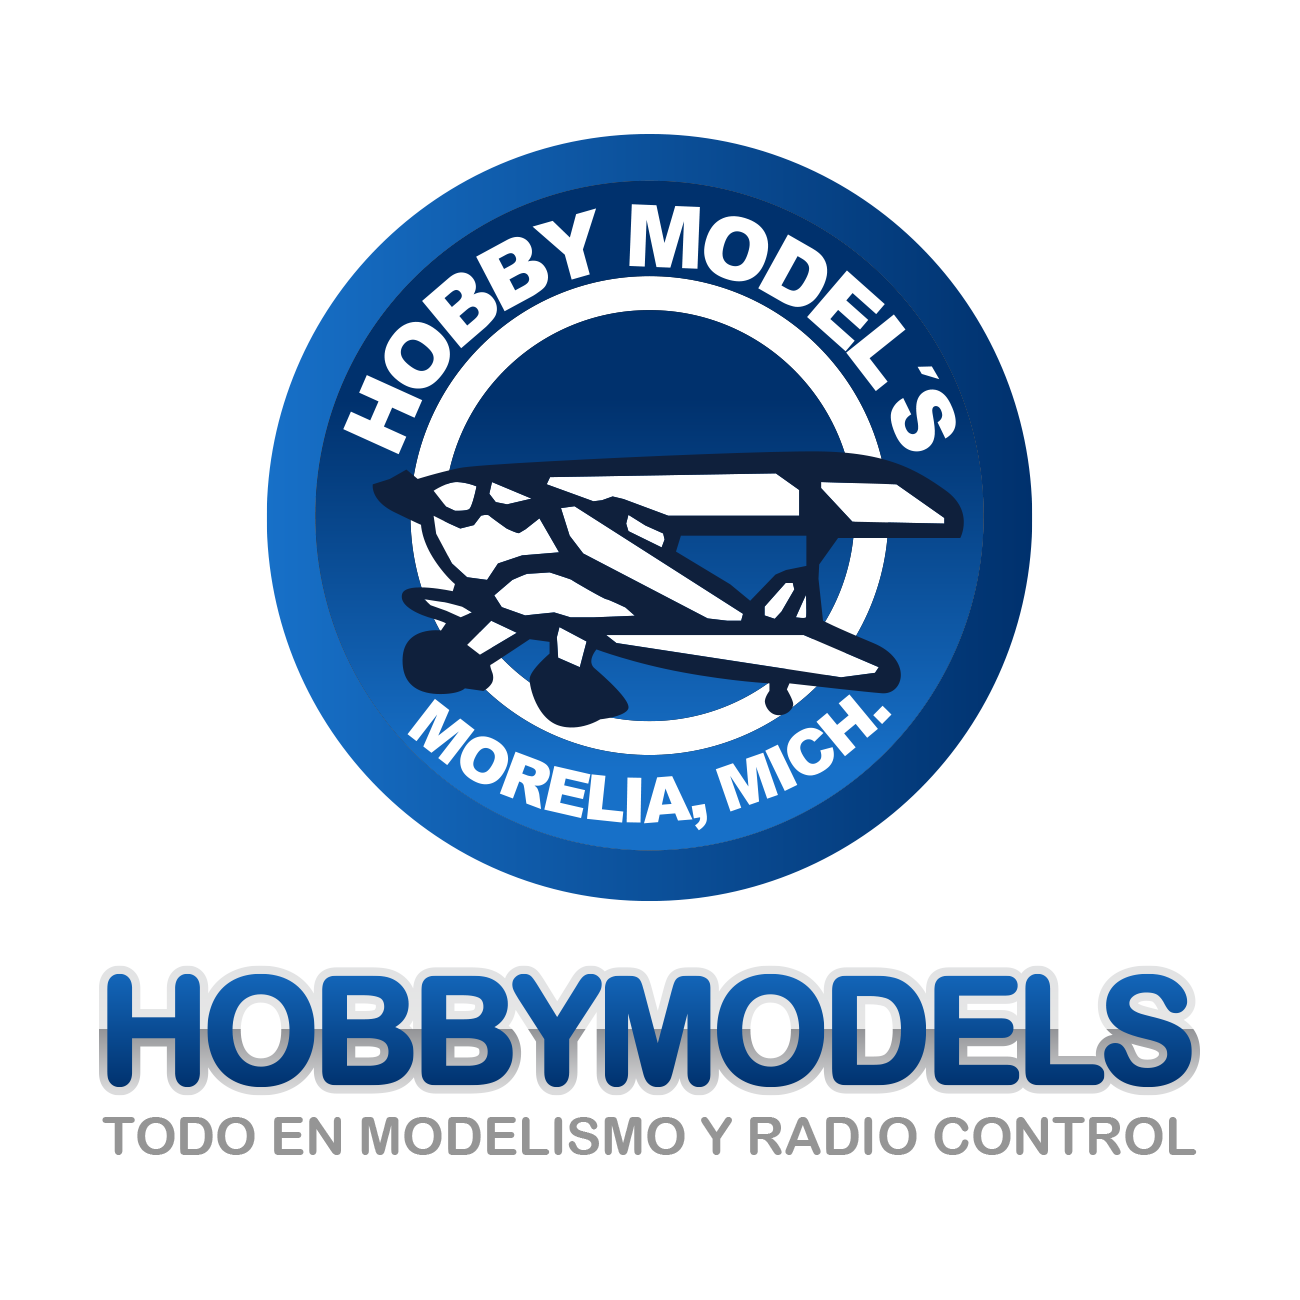 logo-hobbymodels-vertical